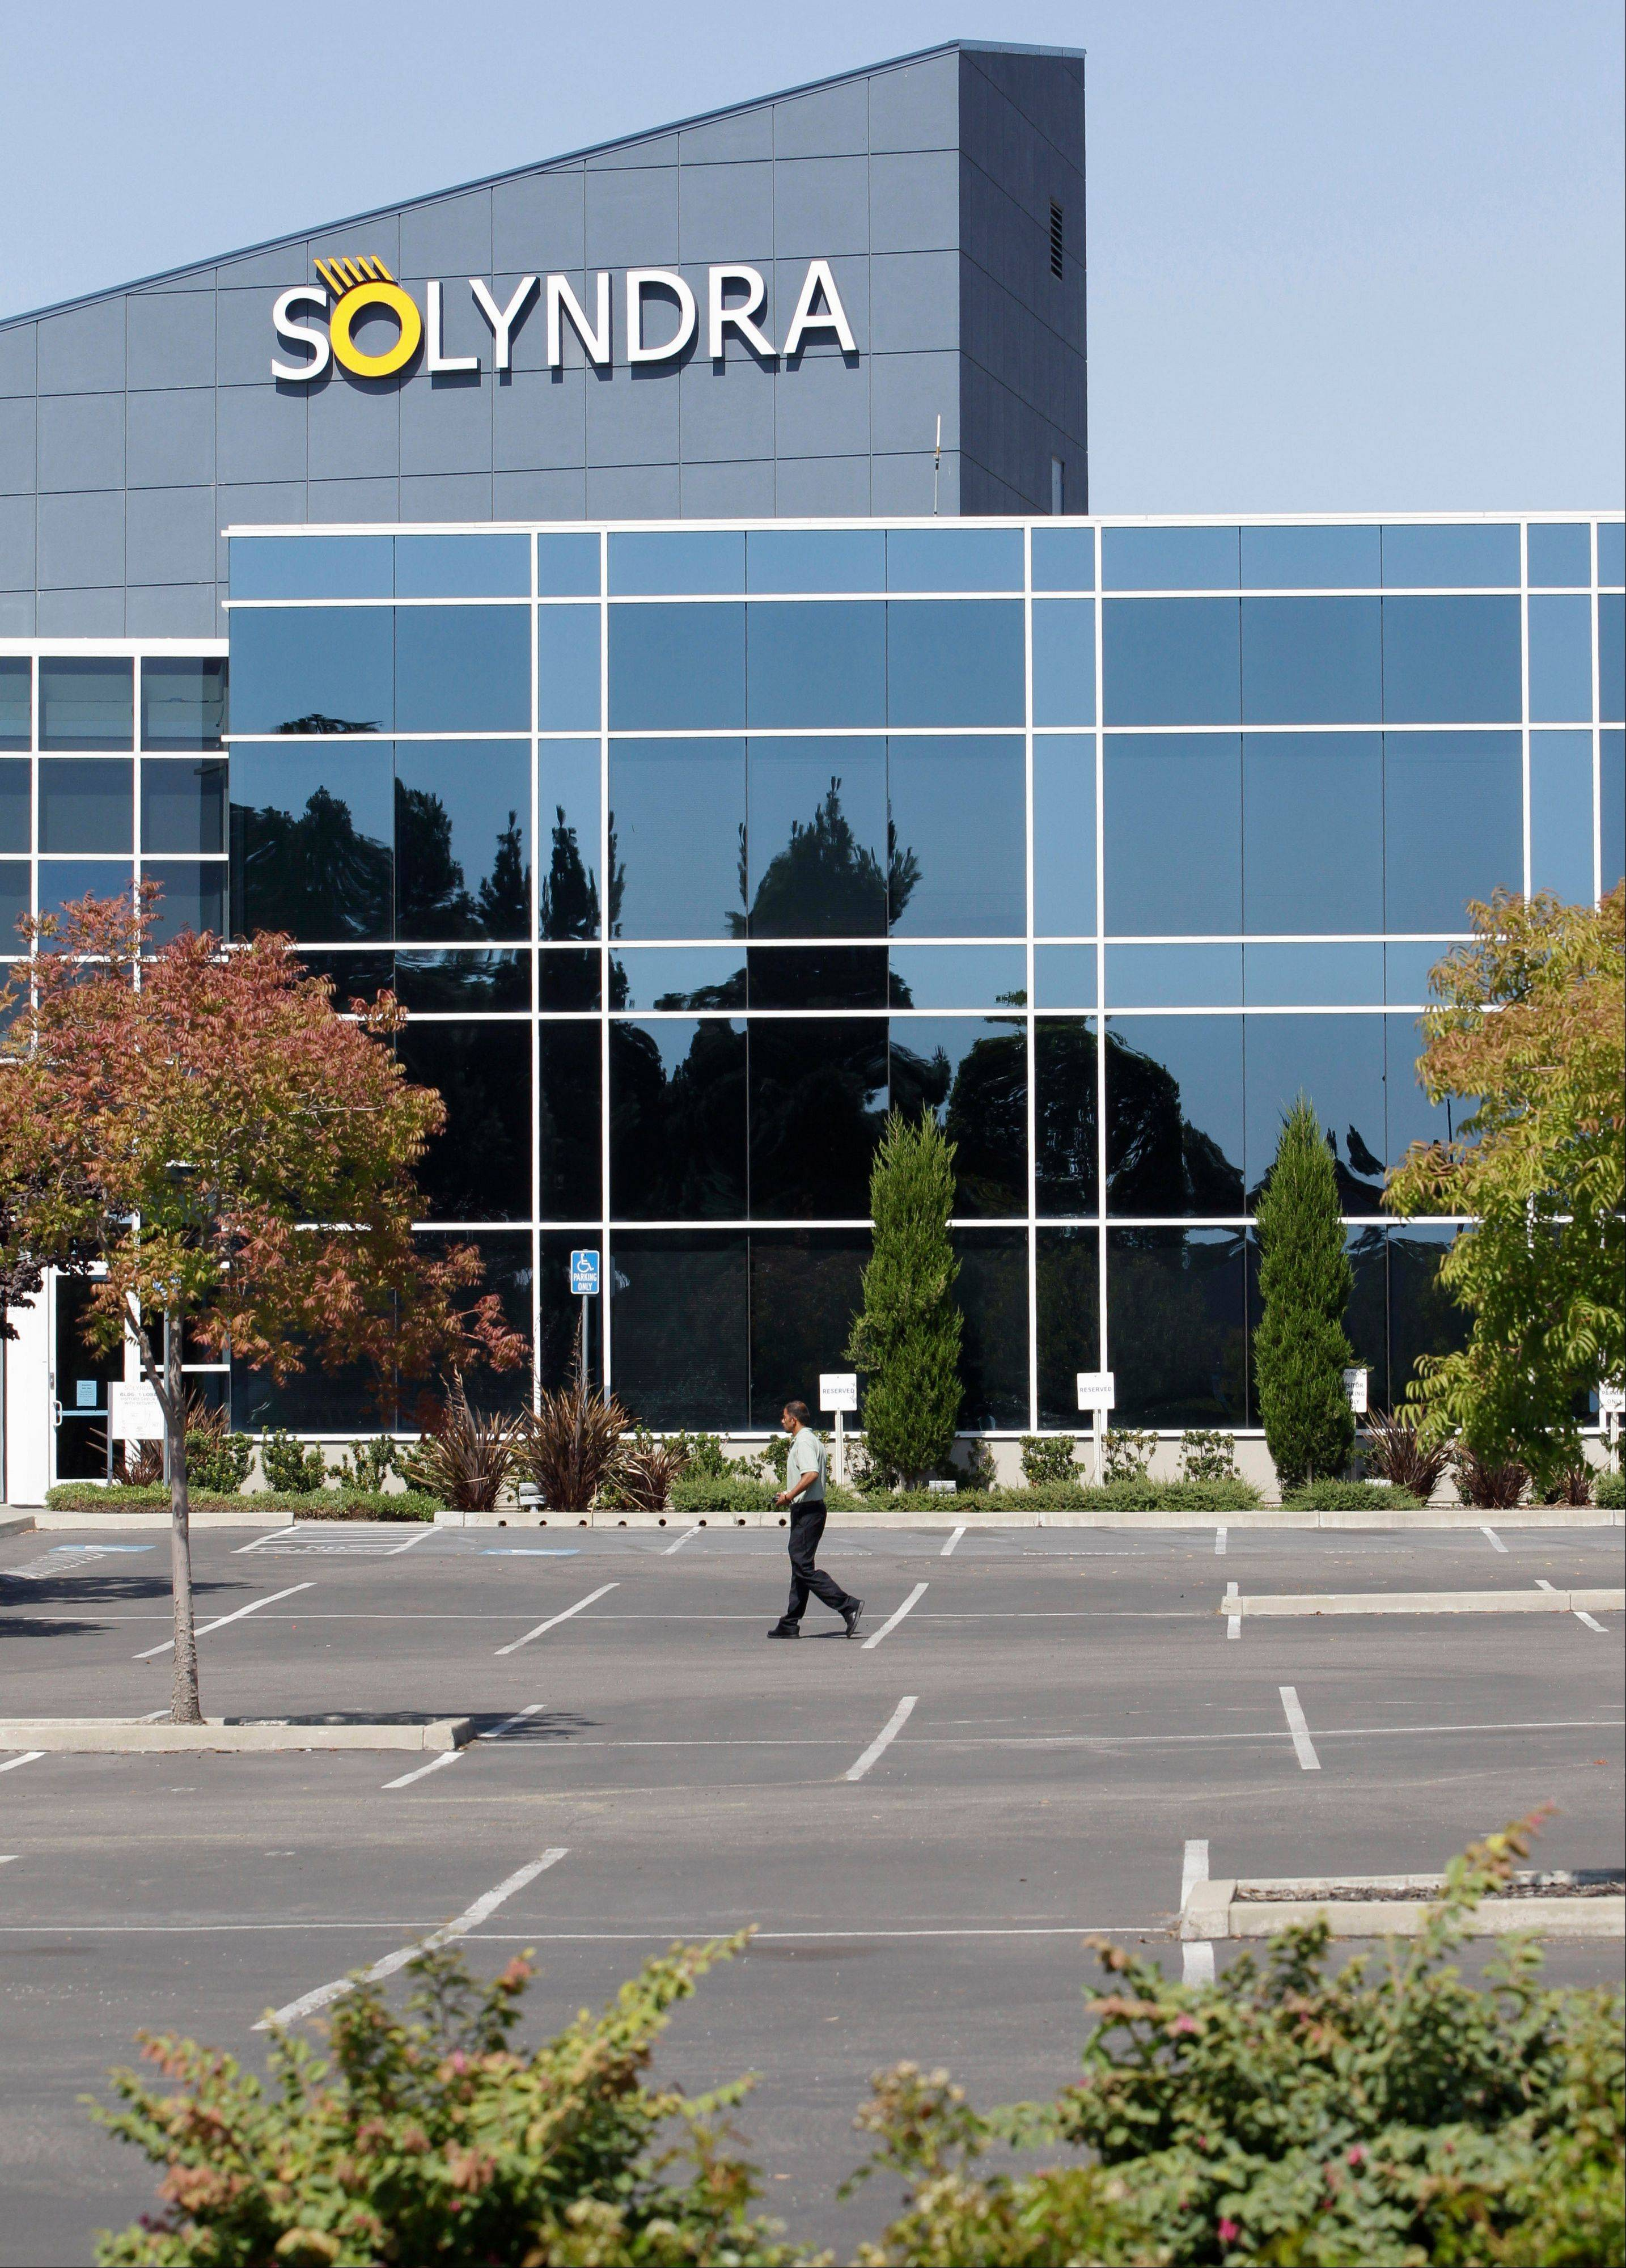 Financially troubled Solyndra, a solar energy company, is trying to form a reorganization plan.